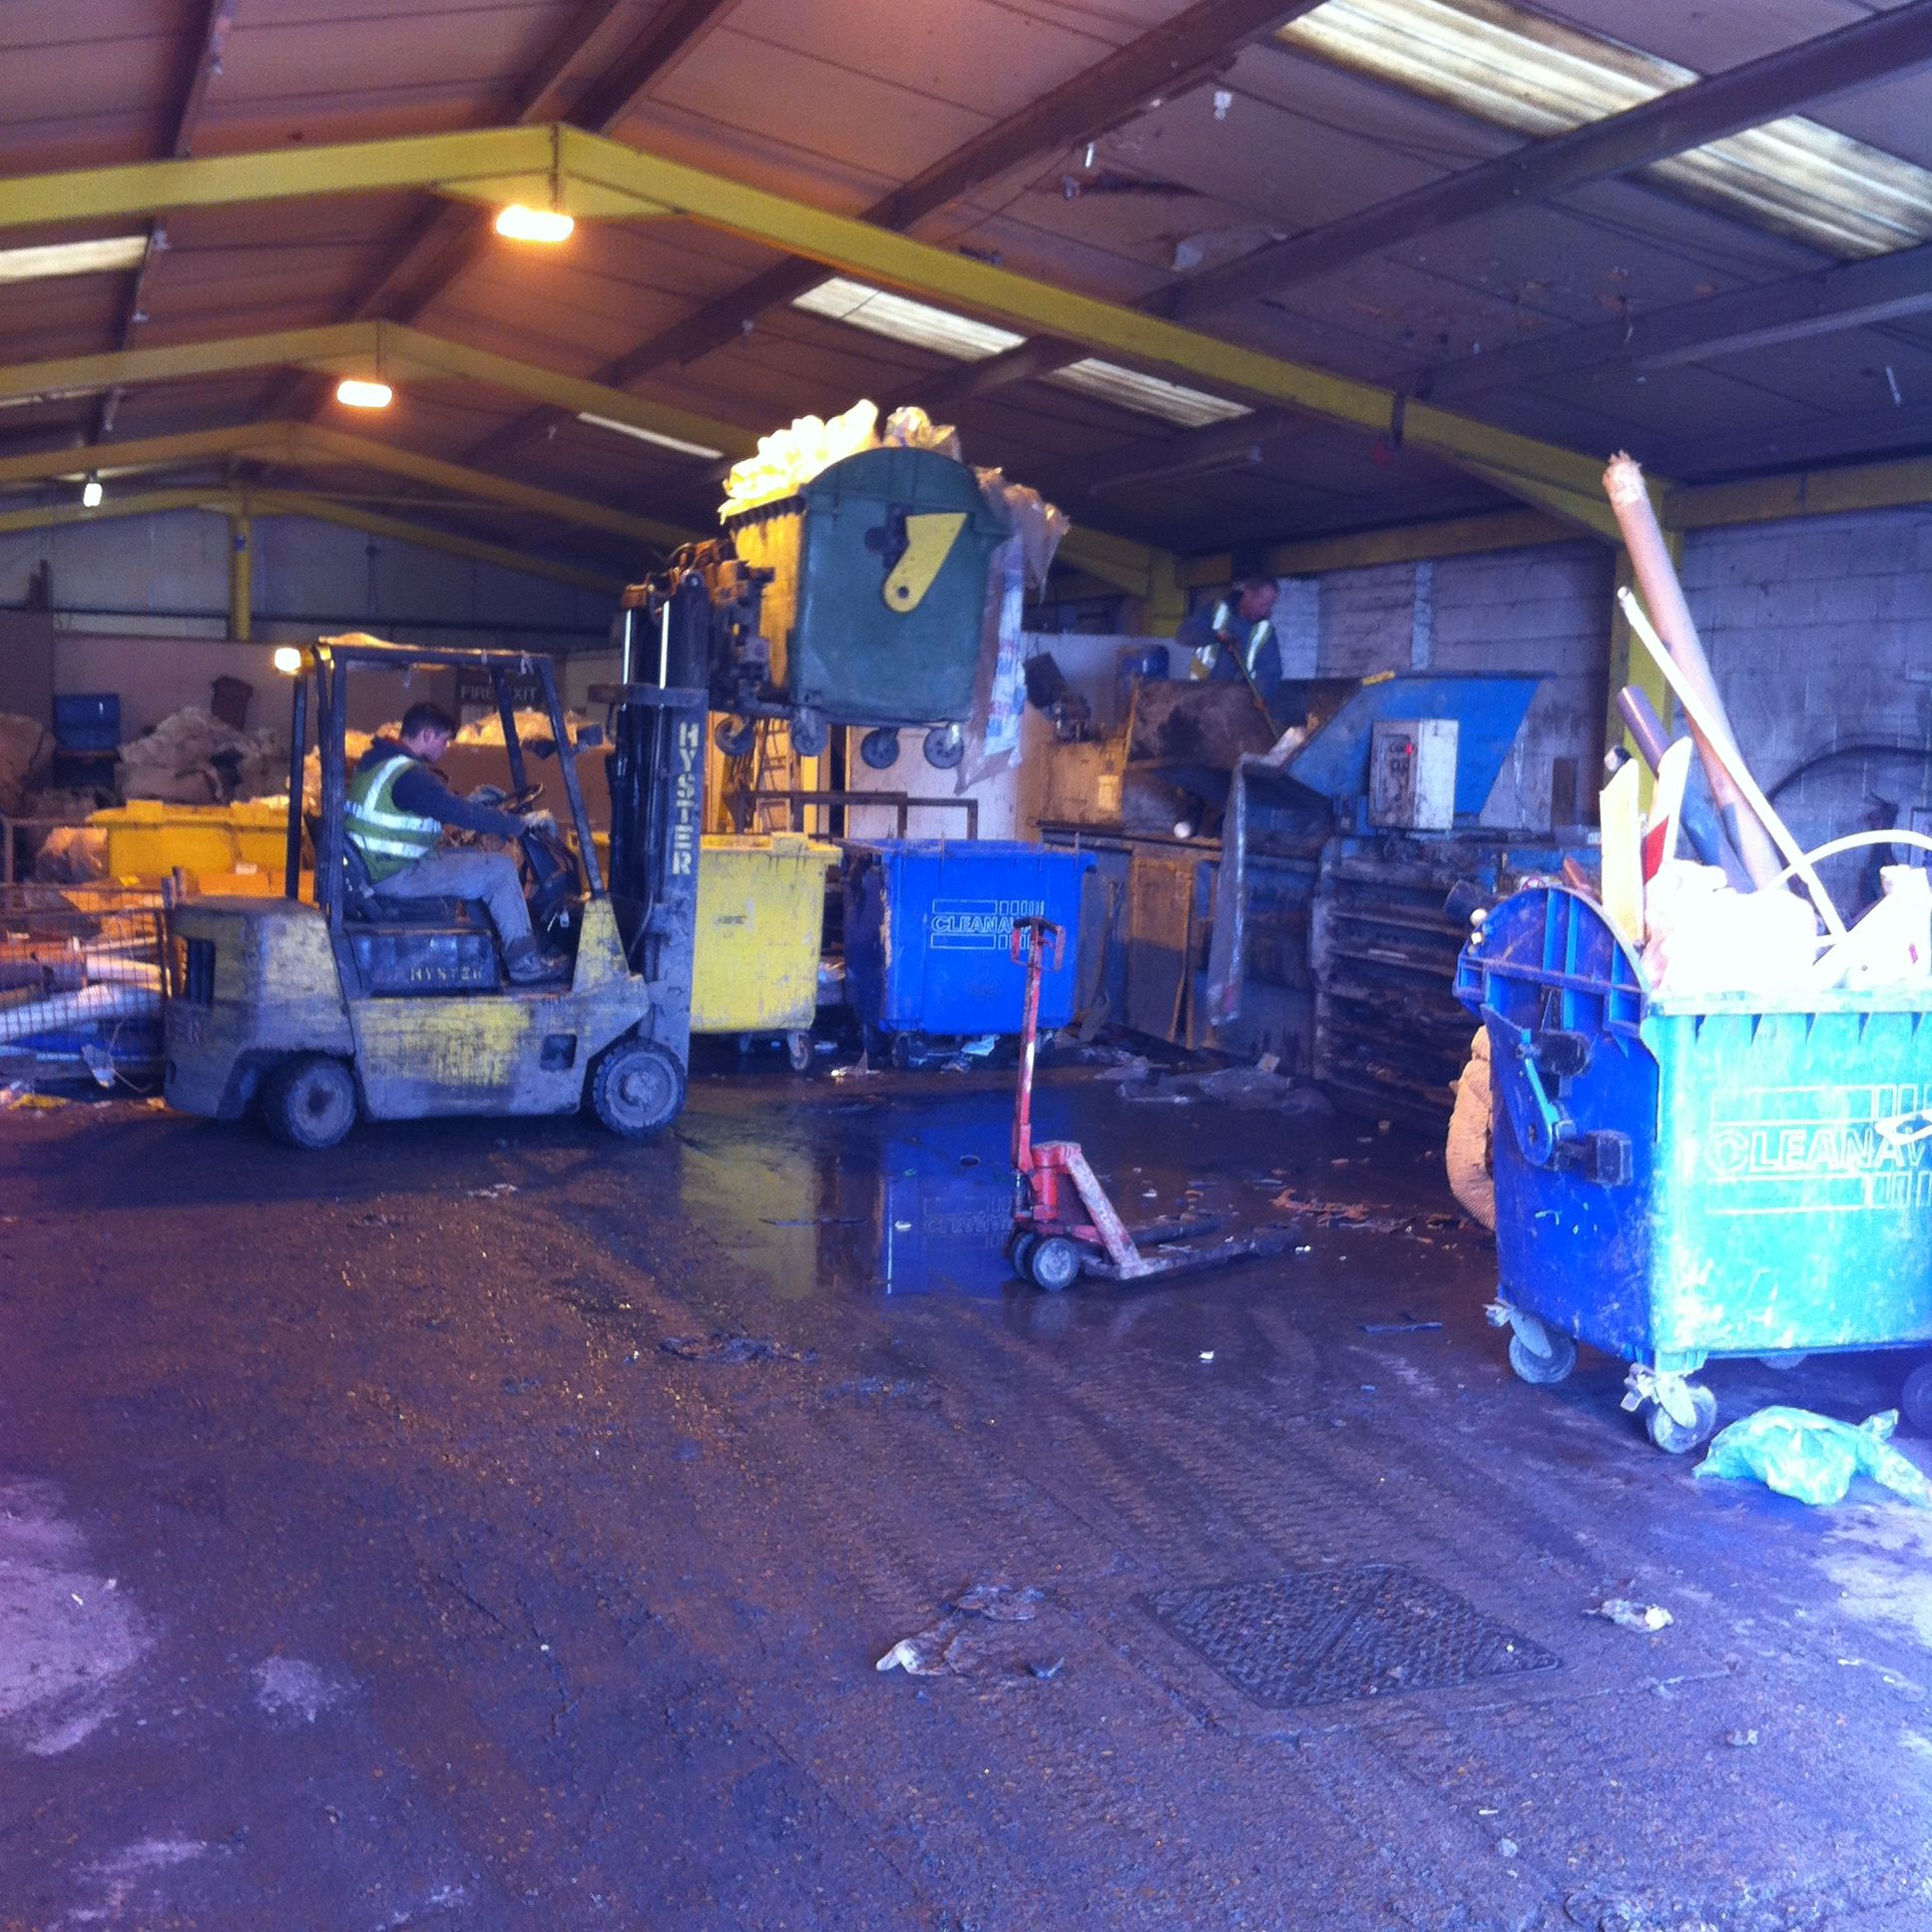 KINGSNORTH WASTE MANAGEMENT facility located in Hoo, Kent.  Purple is pretty but we accept all other colours too! We are the U.K.'s leading experts in plastics waste recycling! Just call 01634 253557 to arrange a delivery or pick up!